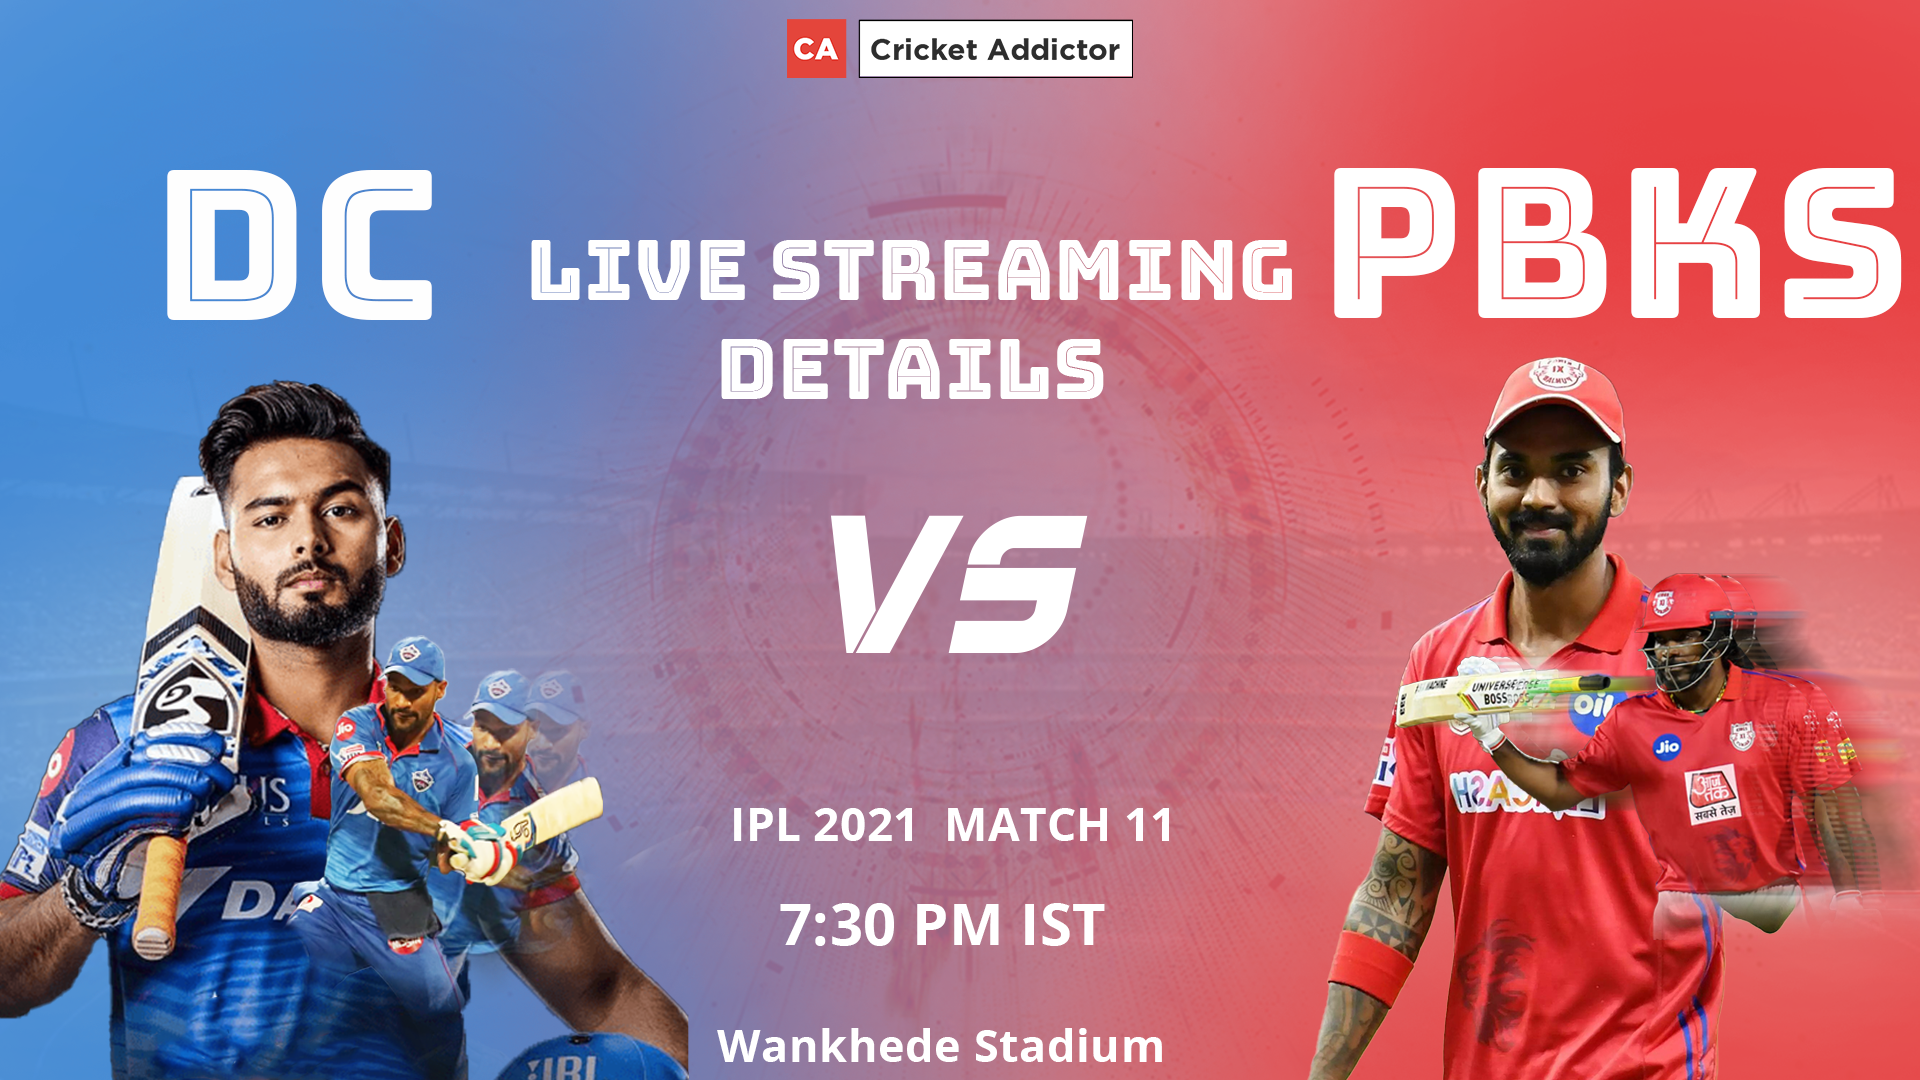 IPL 2021, Delhi Capitals, Punjab Kings, DC vs PBKS, Live Streaming, When and Where to Watch